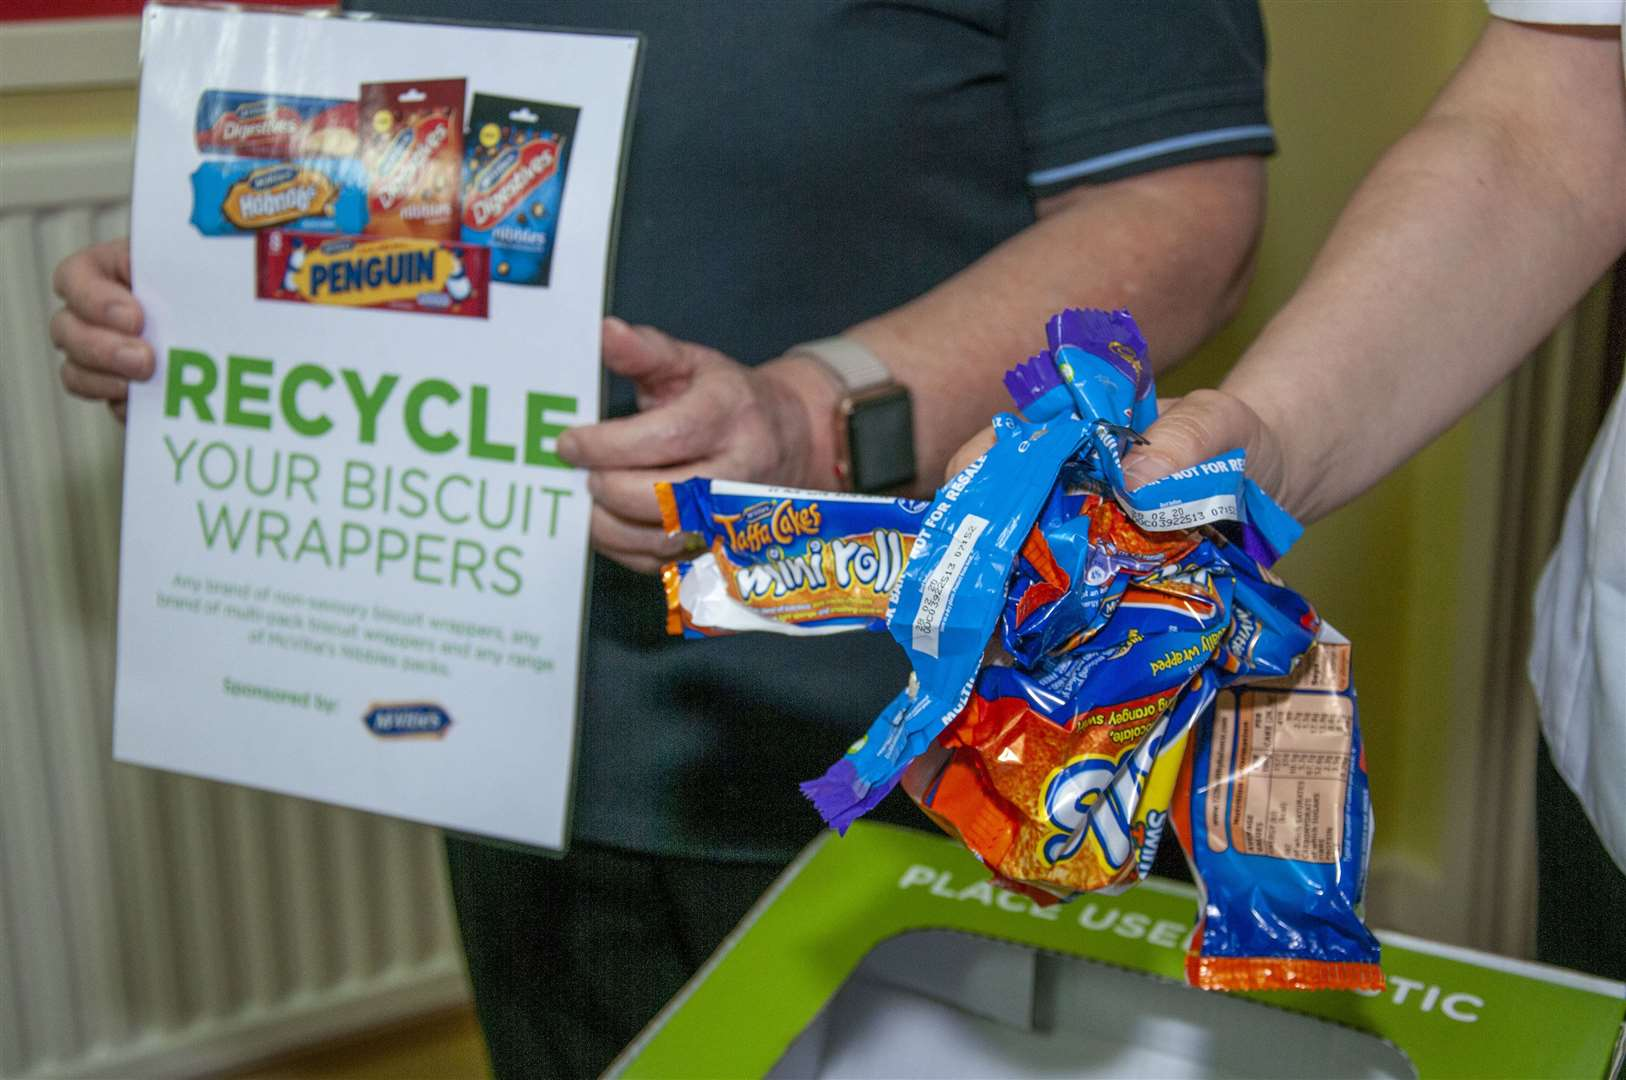 Bourne Salvation Army is collecting biscuit wrappers for recycling